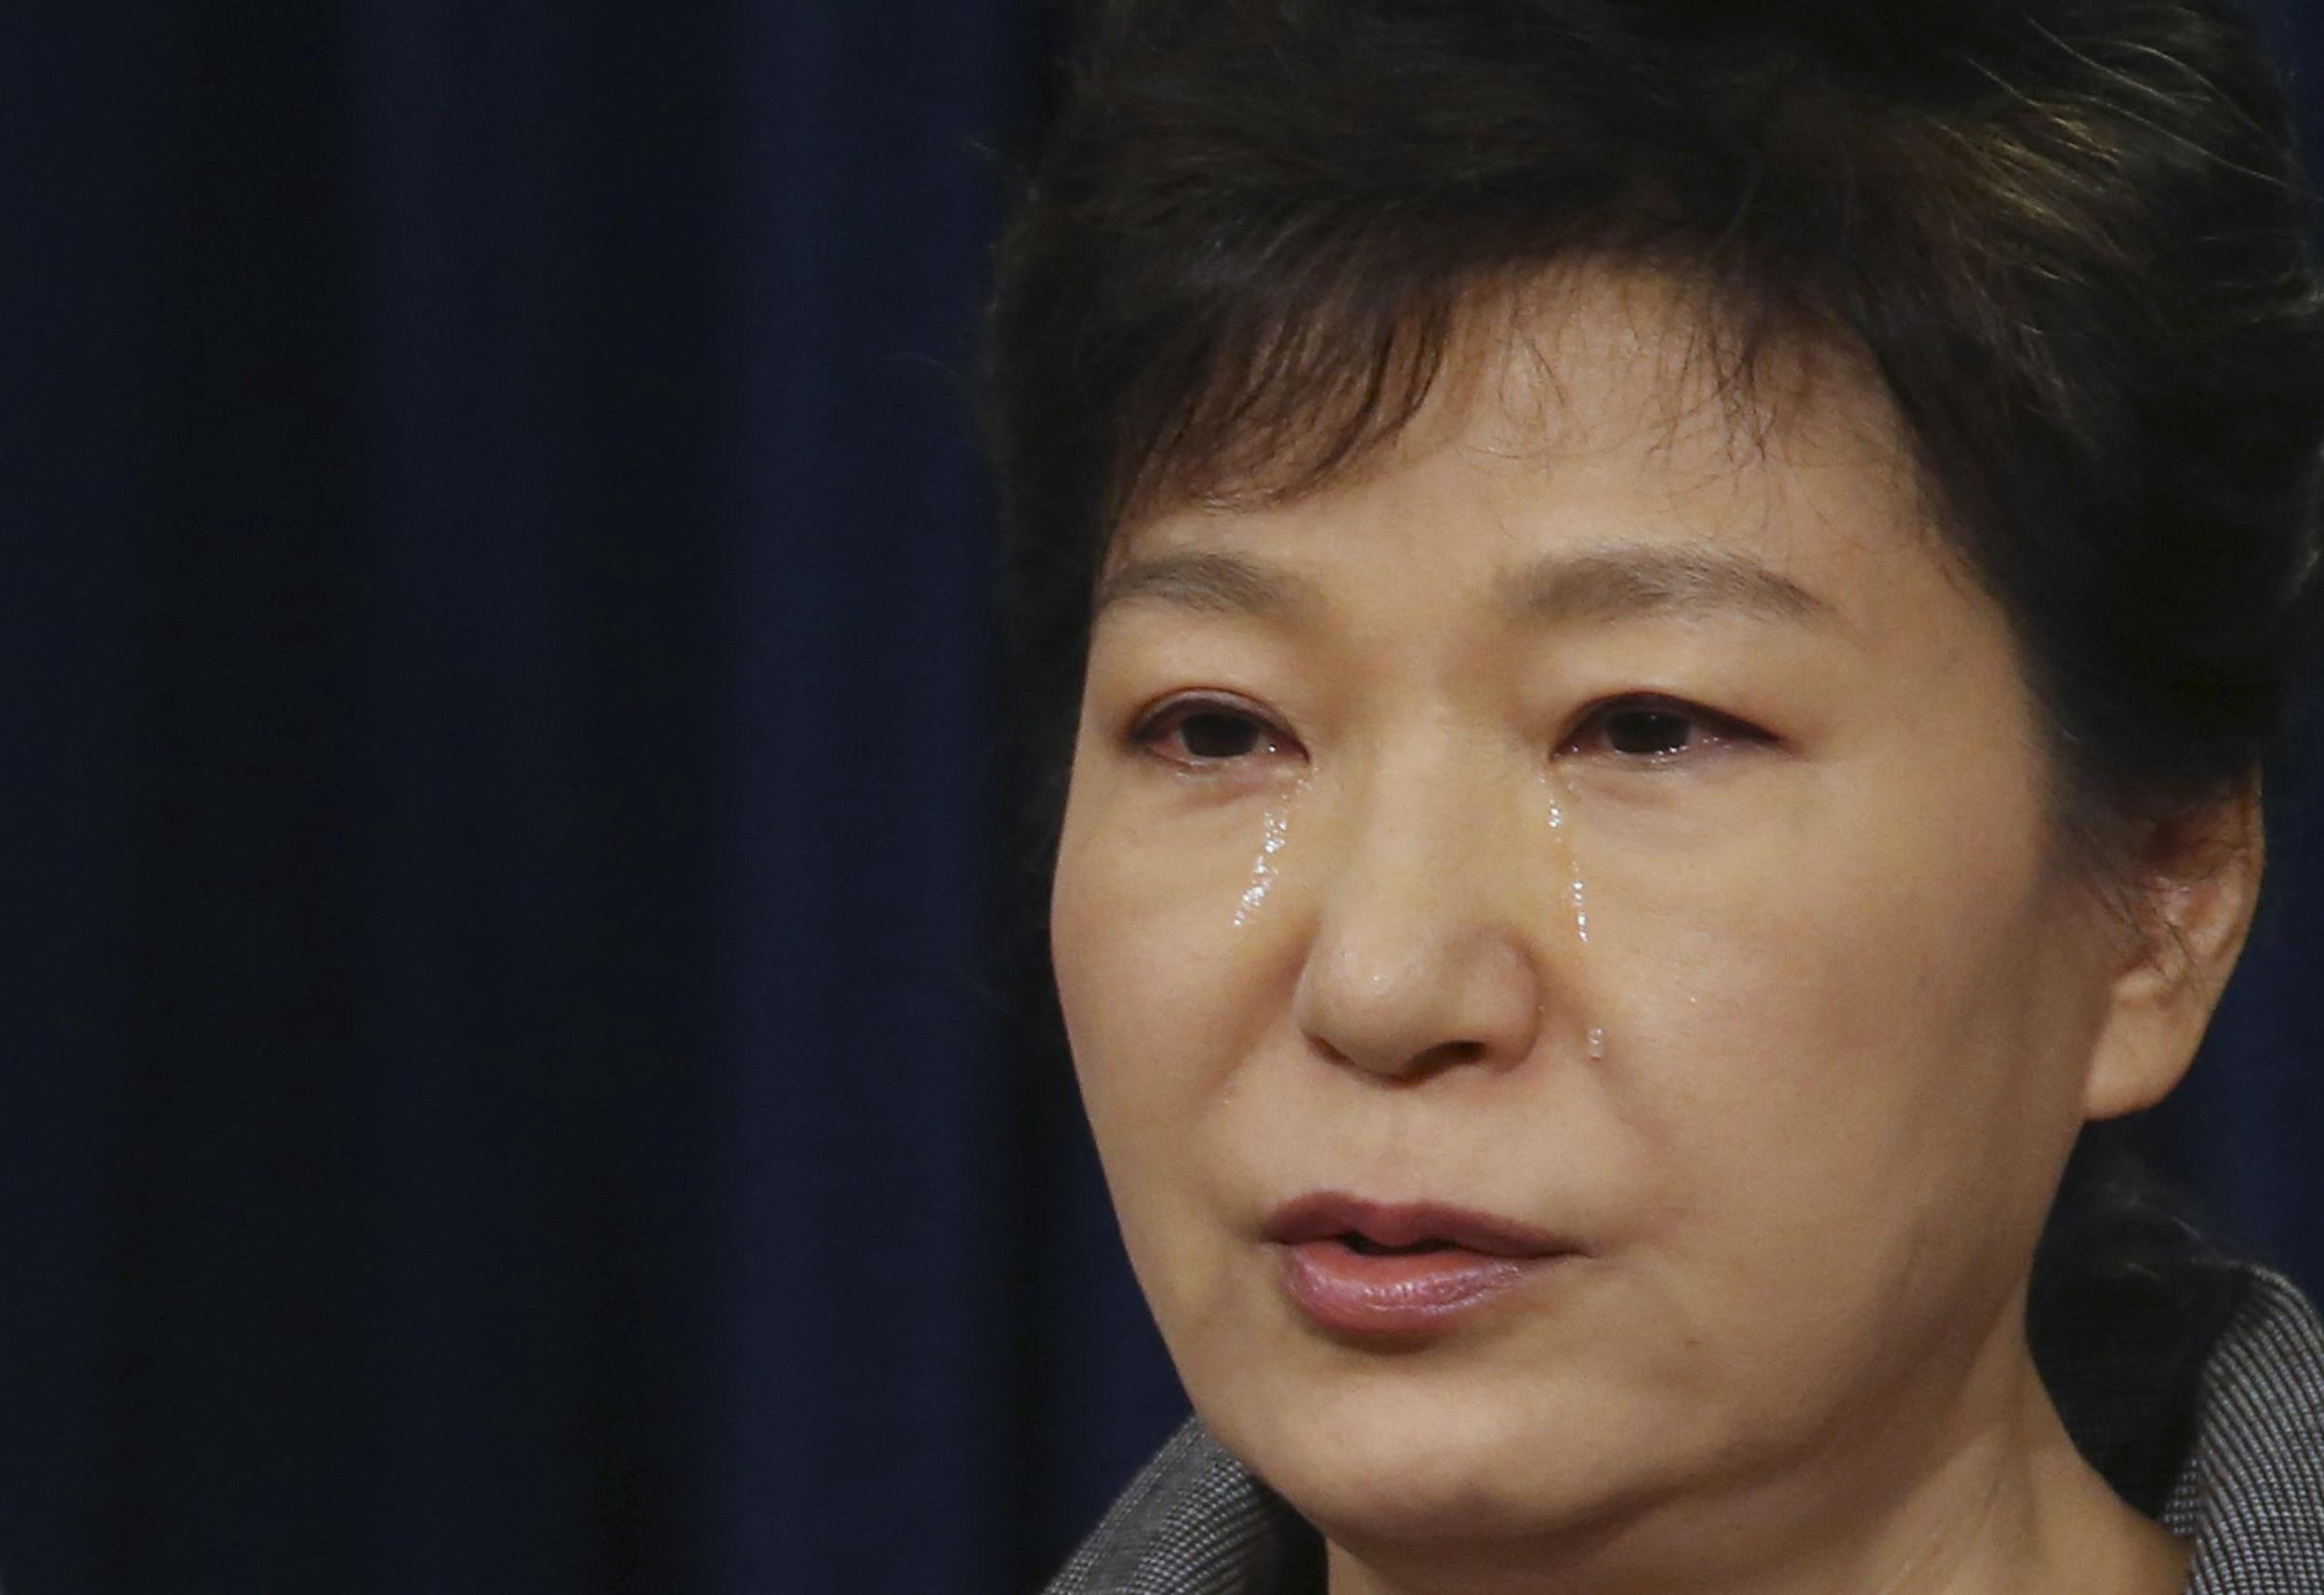 Image: South Korea's President Park cries as she delivers a speech to the nation at the Presidential Blue House in Seoul